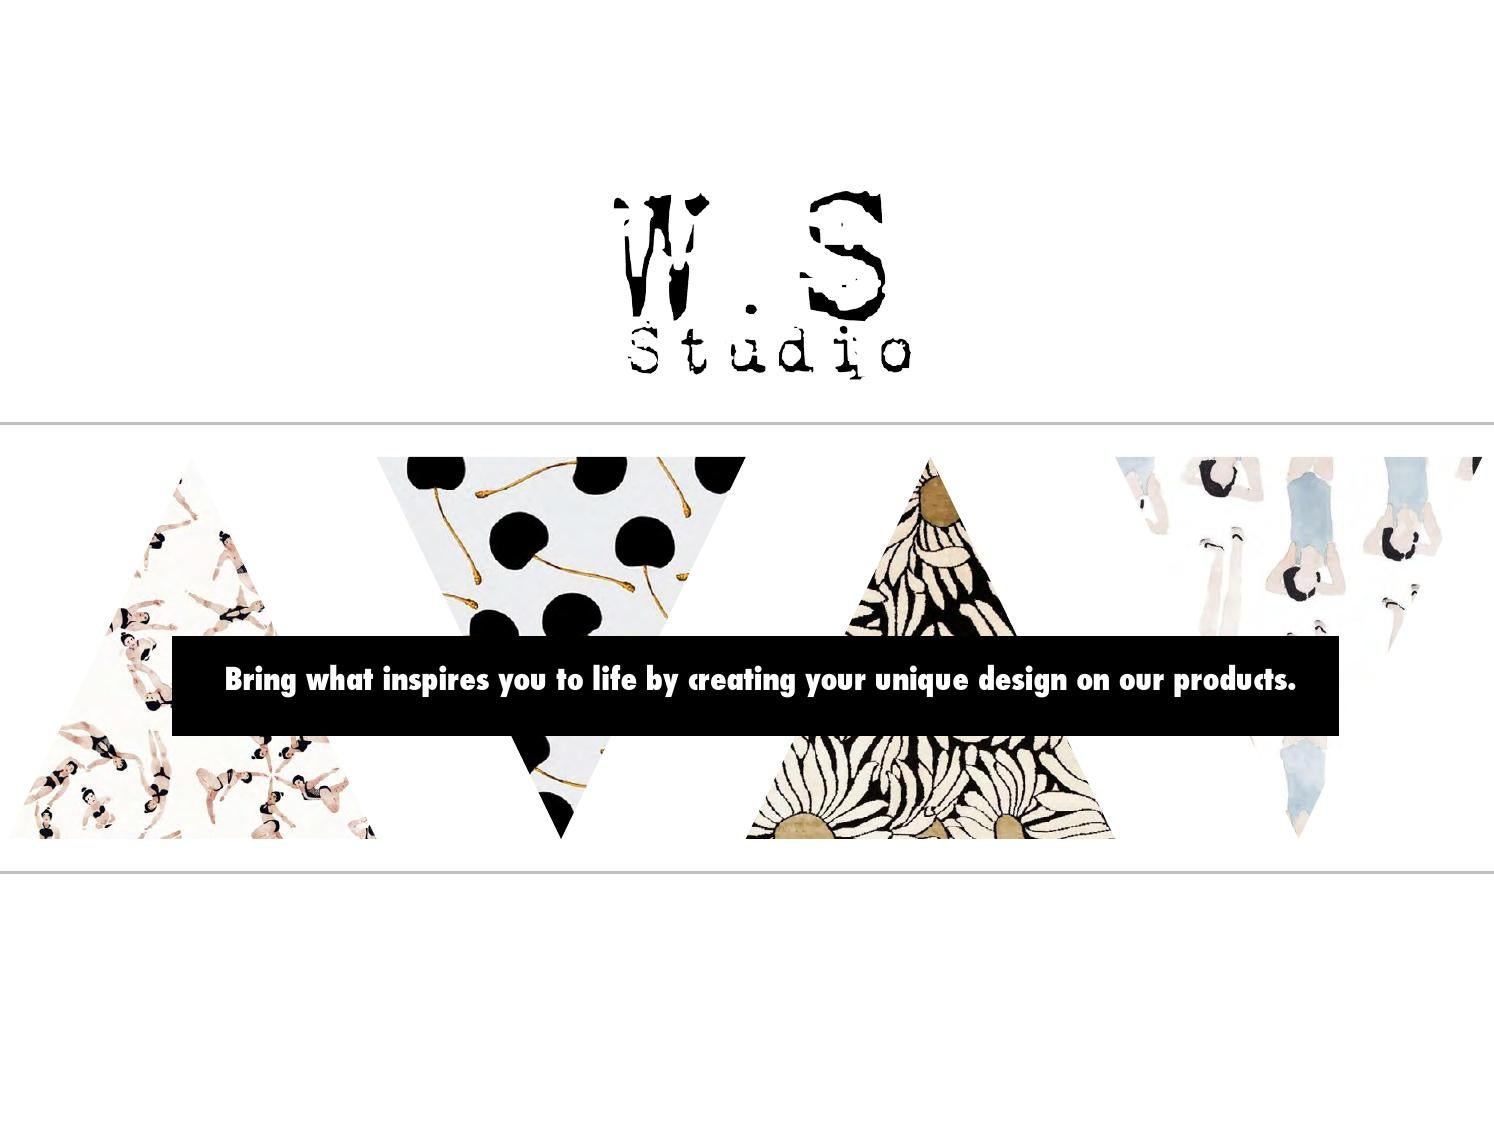 Ws studio strategic marketing plan by daisy zhang issuu fandeluxe Image collections